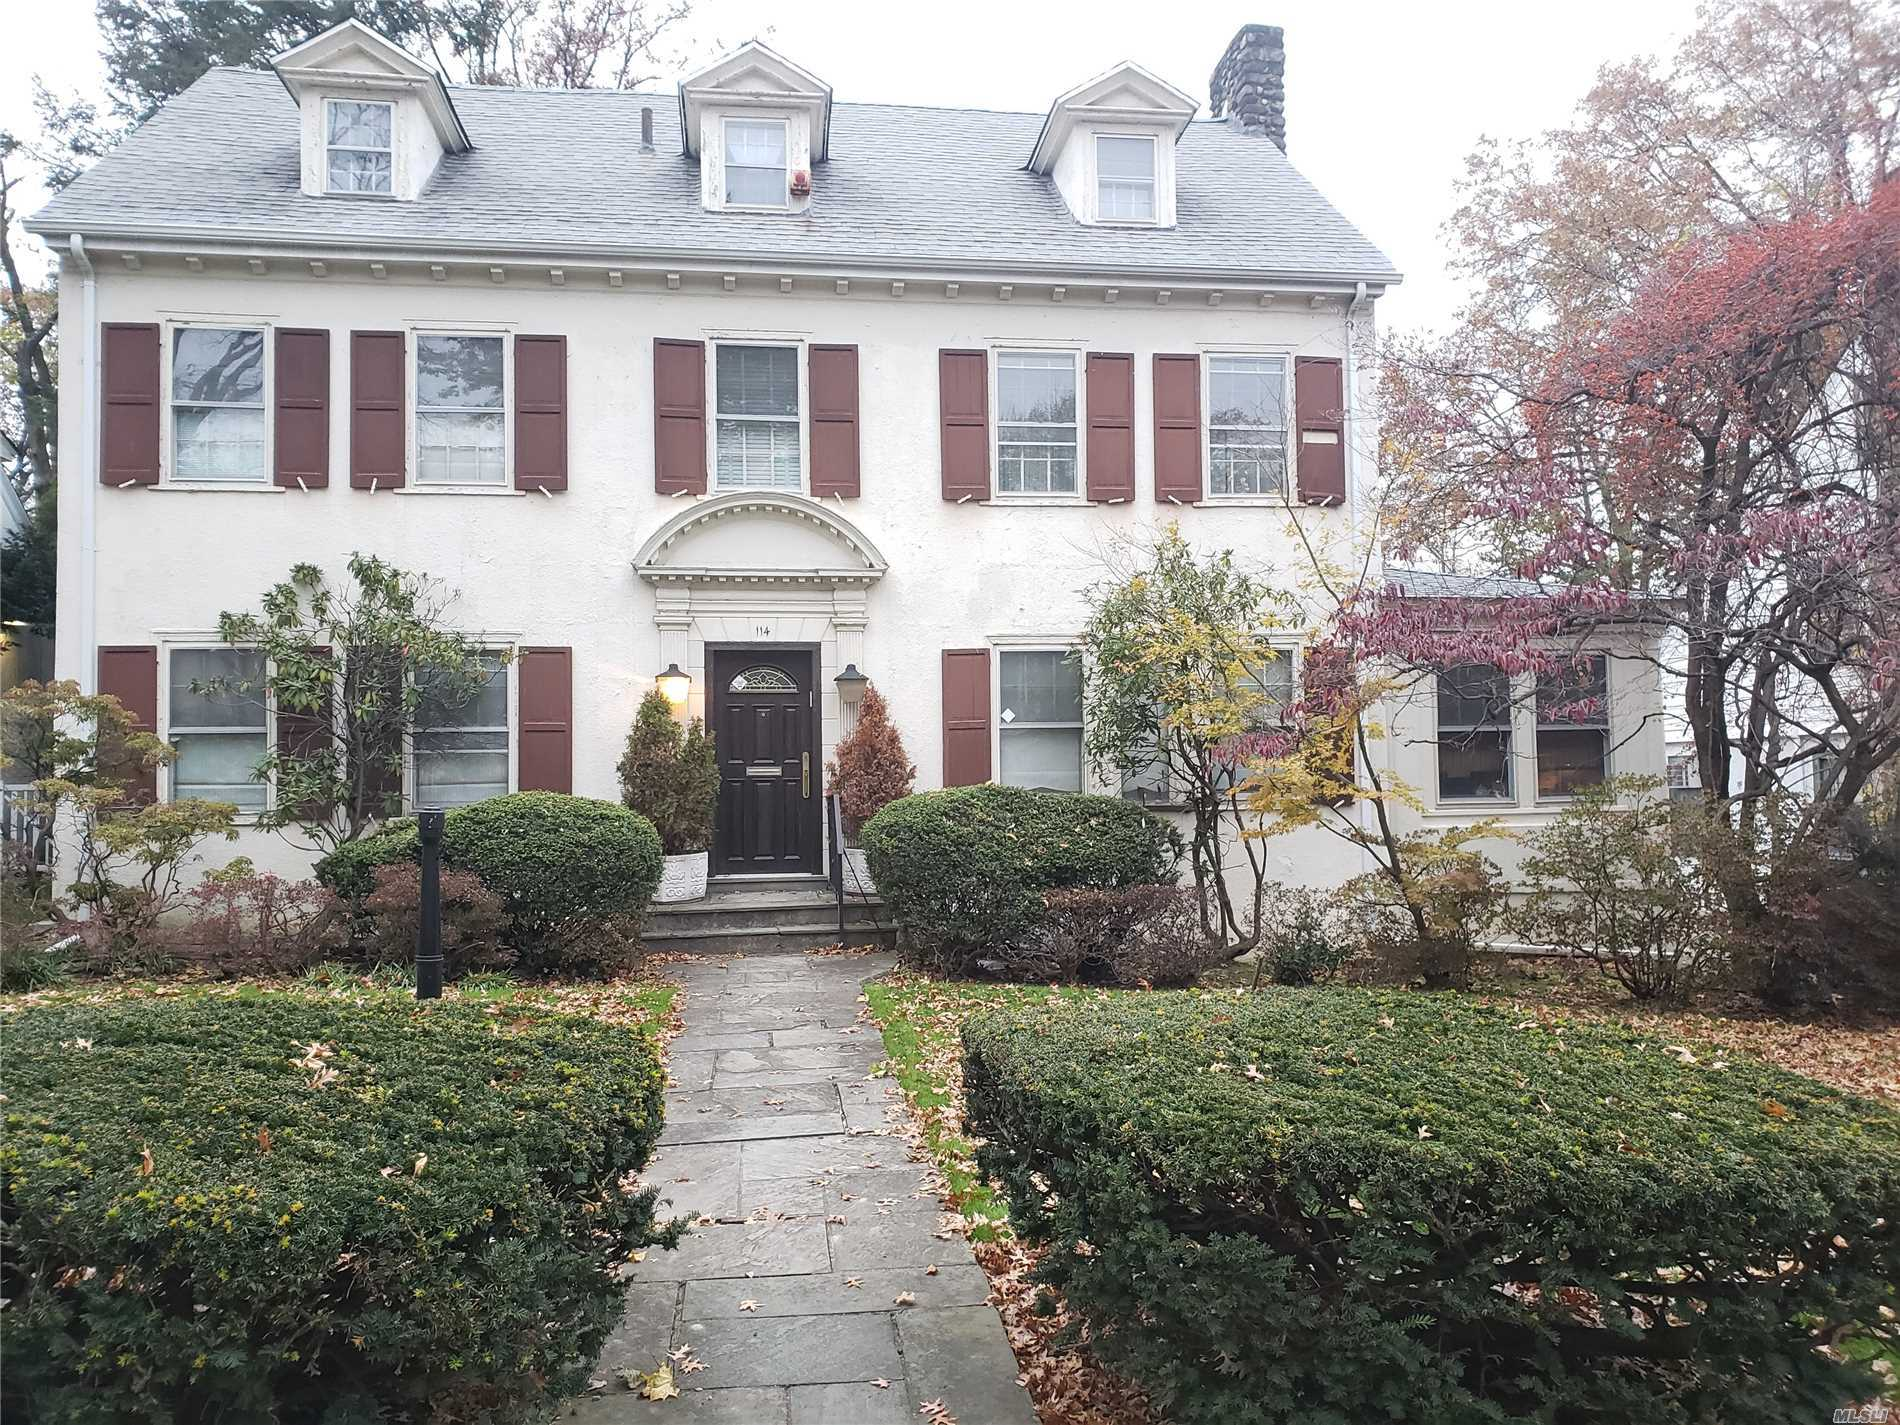 One Of A Kind Large Central Hall Colonial With High Ceilings In Prime Location Of Kew Gardens. Foyer W/Big Closet, Large Living Room W/Fireplace, Dining Room, Spacious Eat In Kitchen, Office With Custom Built In Furniture And Fireplace, Master Suite Plus Additional 5 Bedrooms And 4Bathrooms. Sun Room. Lots Of Storage Space. Font Yard, Large Back Yard, Detached 2 Car Garage. Excellent Location Near Forest Park, Lirr. Close To Houses Of Worship, Shopping, Dining, Transportation And More. Must See